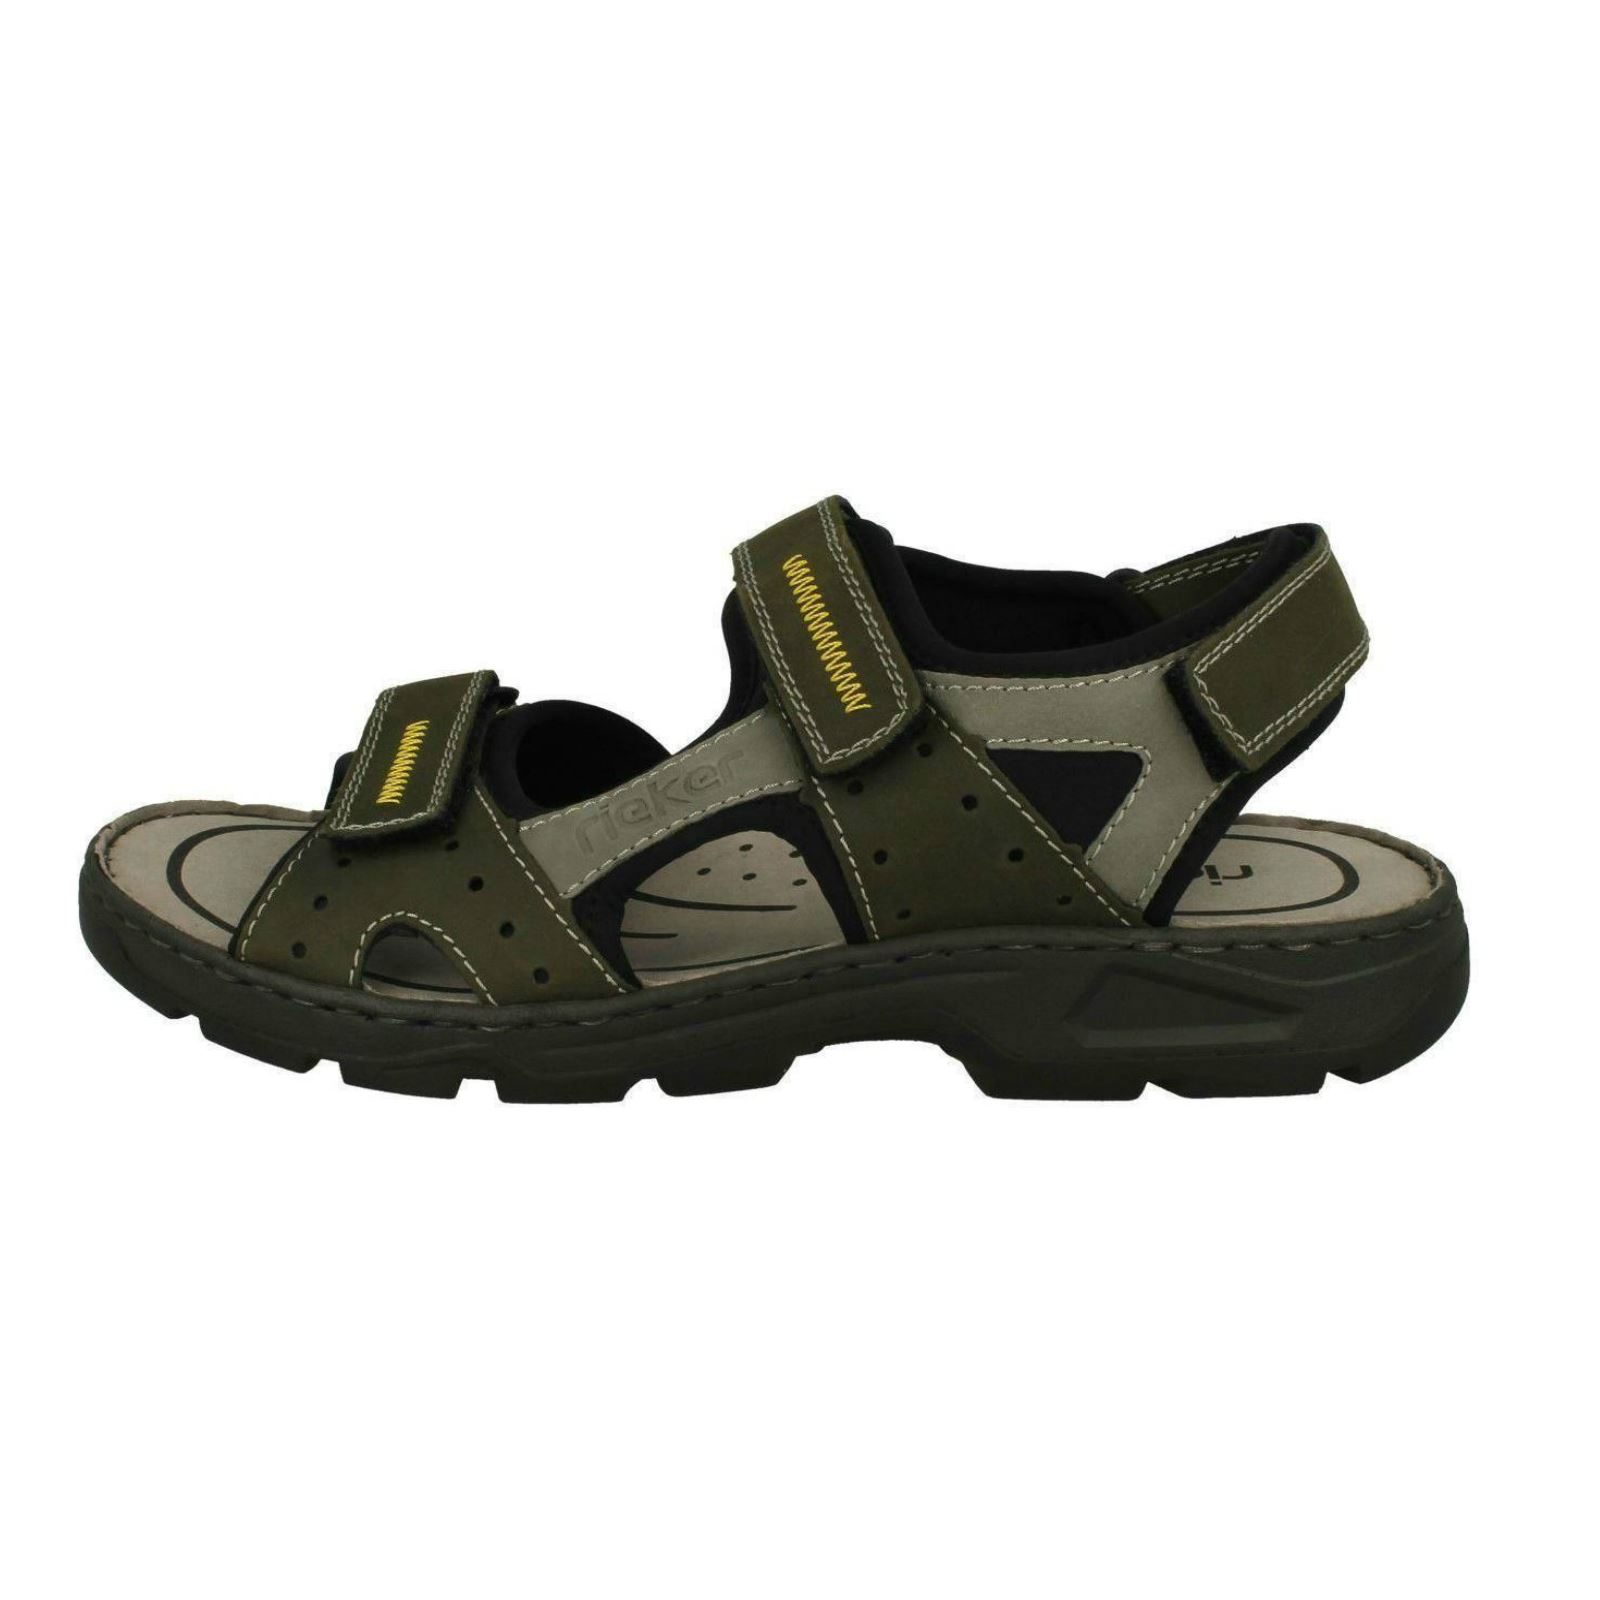 Mens-Rieker-Casual-Strapped-Sandals-26157 thumbnail 4